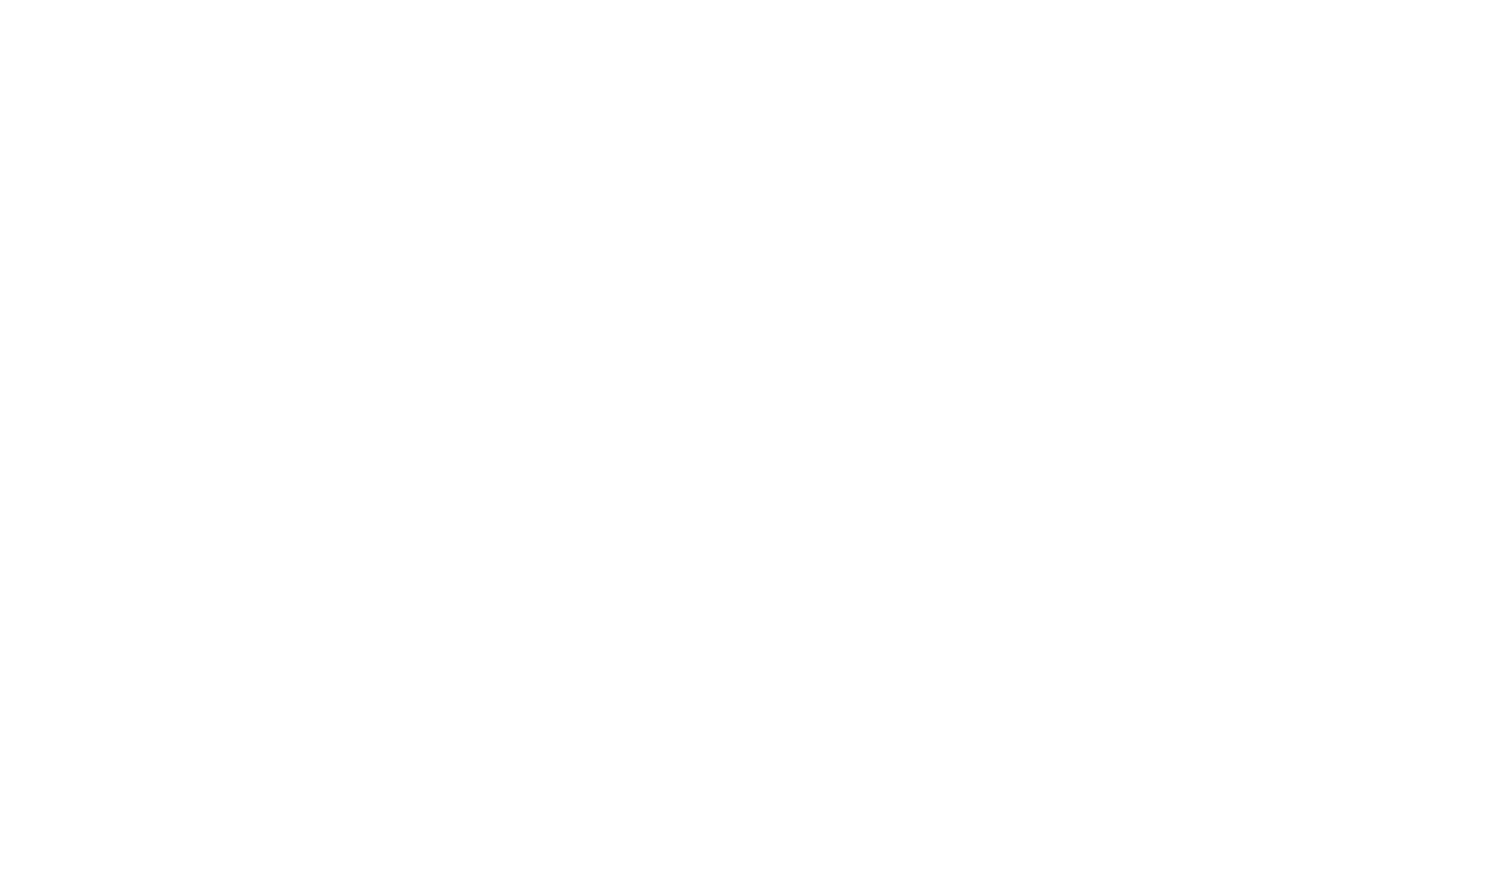 Four Lakes Athletic Club